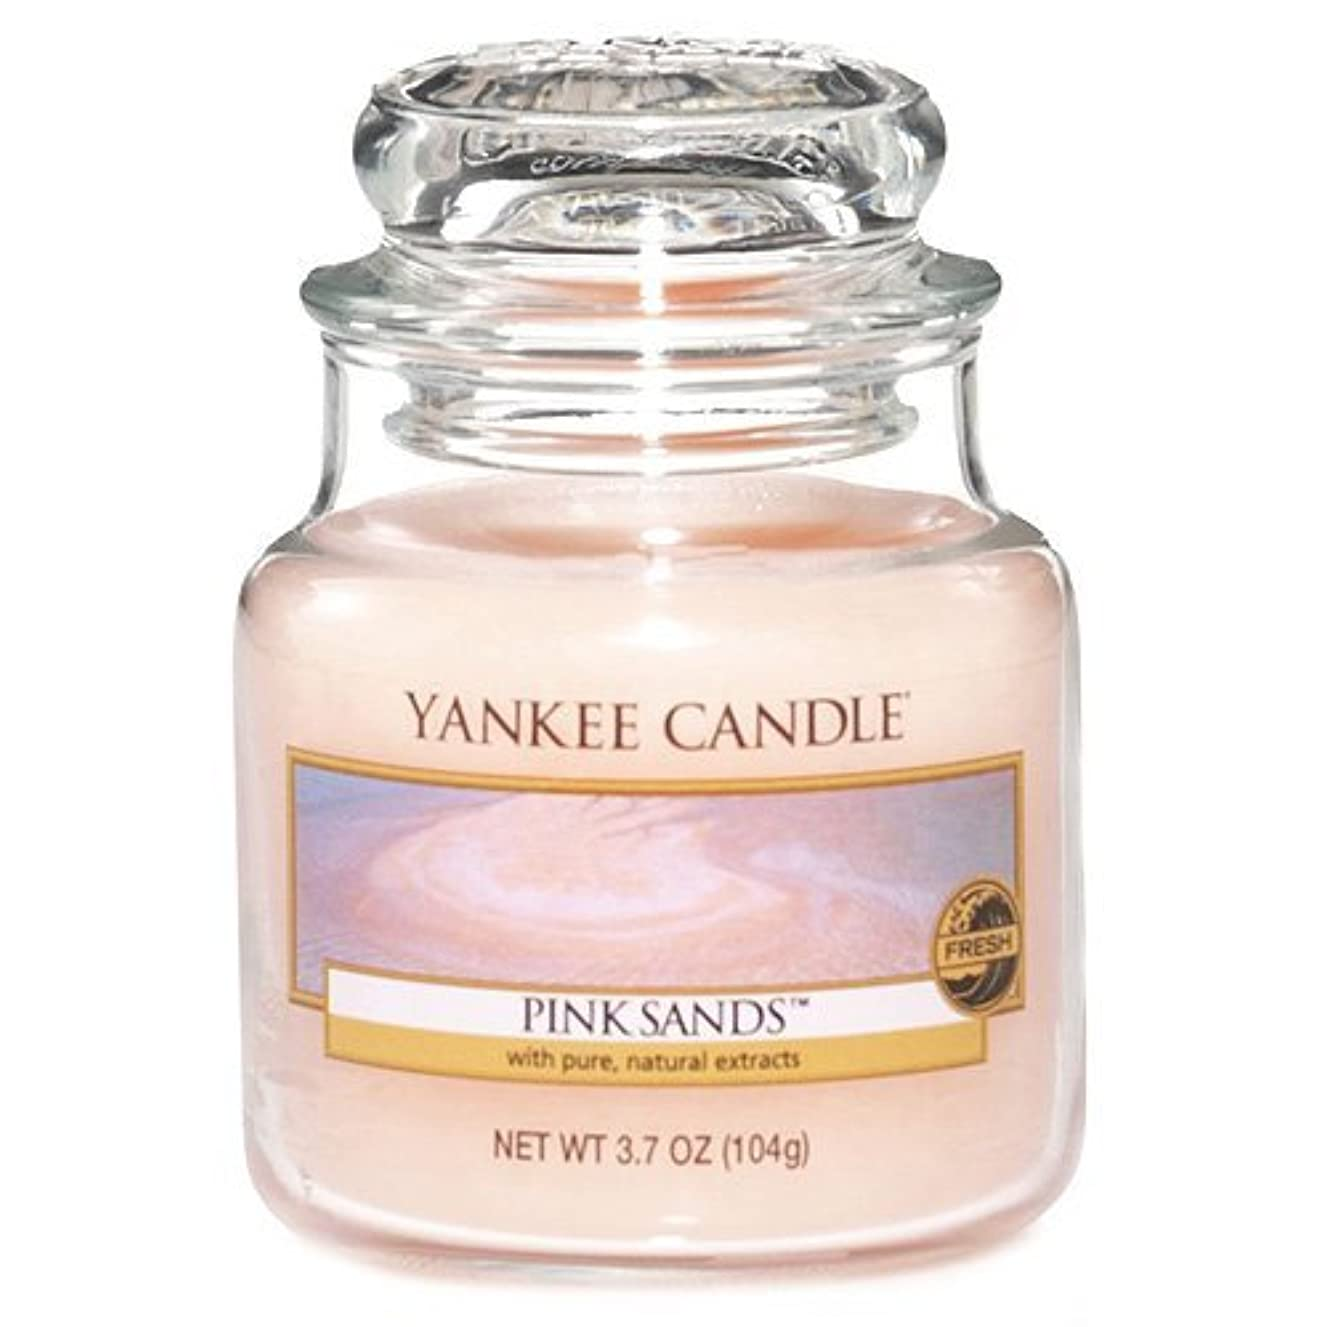 Yankee Candle Pink Sands 3.7-Ounce Jar Candle, Small [並行輸入品]